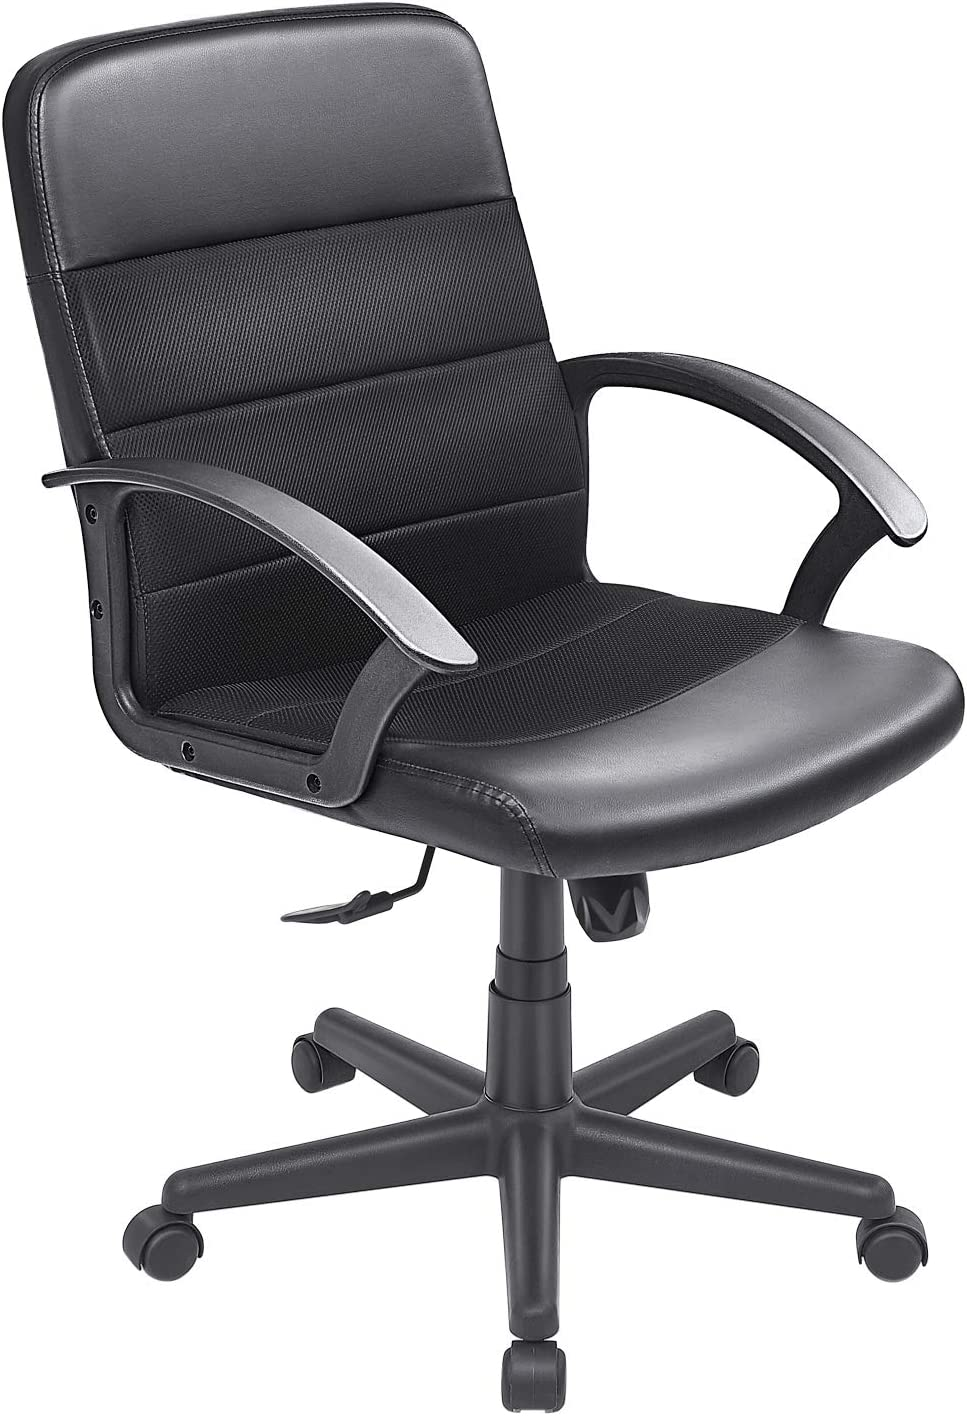 Bowthy Executive Office Chair Computer Task Desk Chair 360 Swivel Chair with Arms Mid Back Chair Mesh Leather Chair (Black)